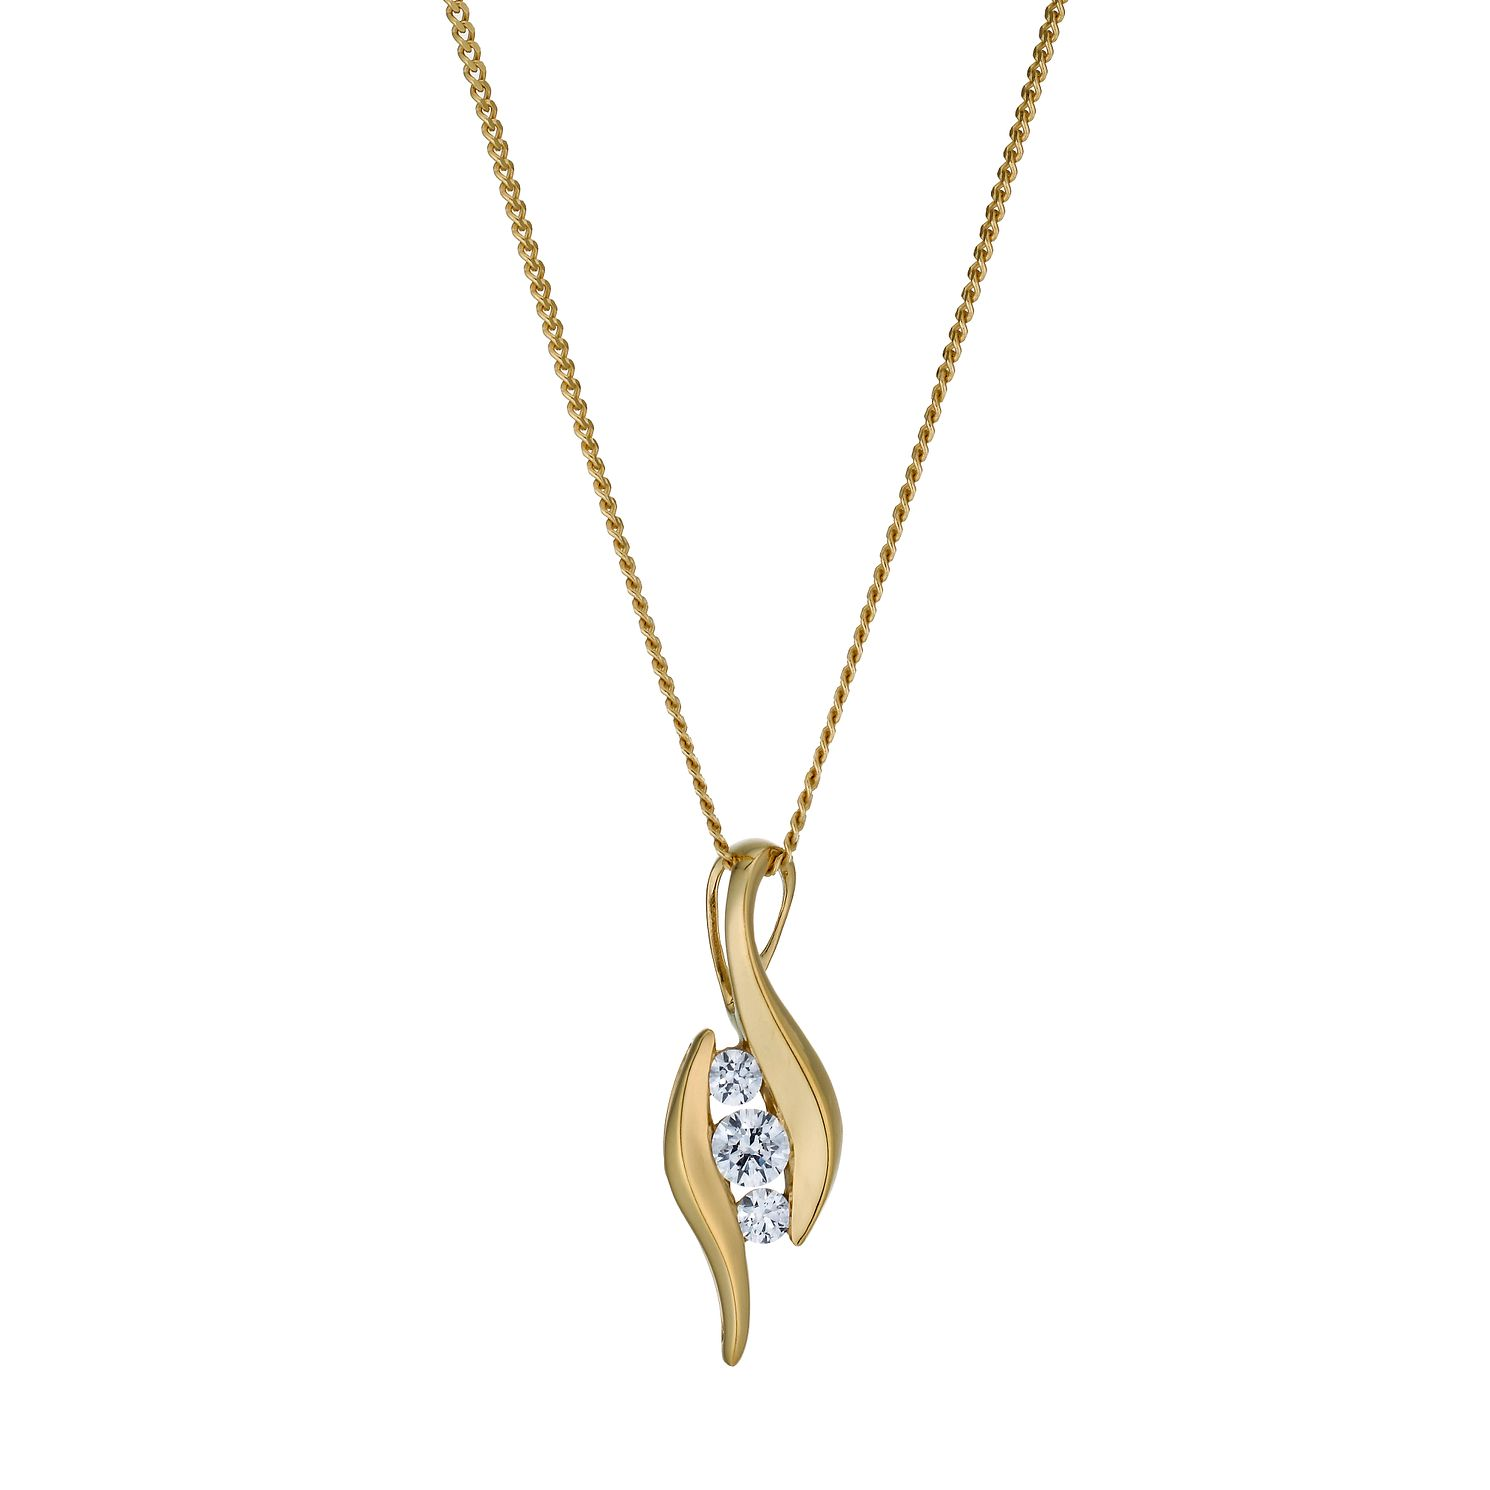 Lumiere 18ct Yellow Gold-Plated Swarovski Zirconia Pendant - Product number 1324144